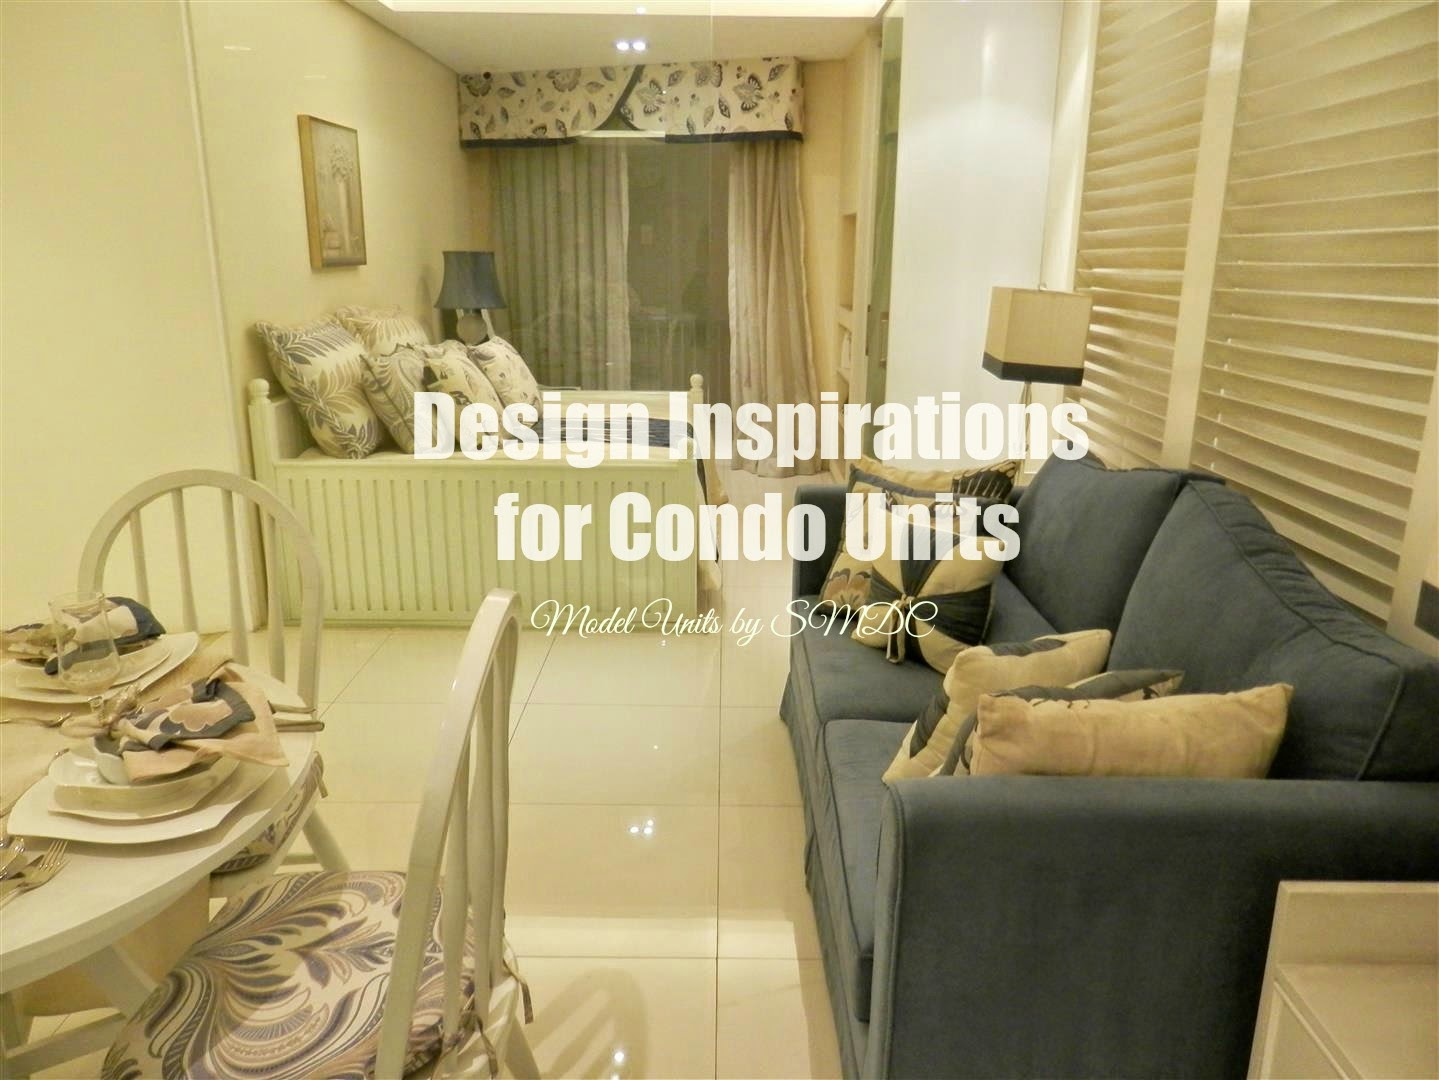 Ruthdelacruz Travel And Lifestyle Blog City Living Design Ideas For New Condo Space